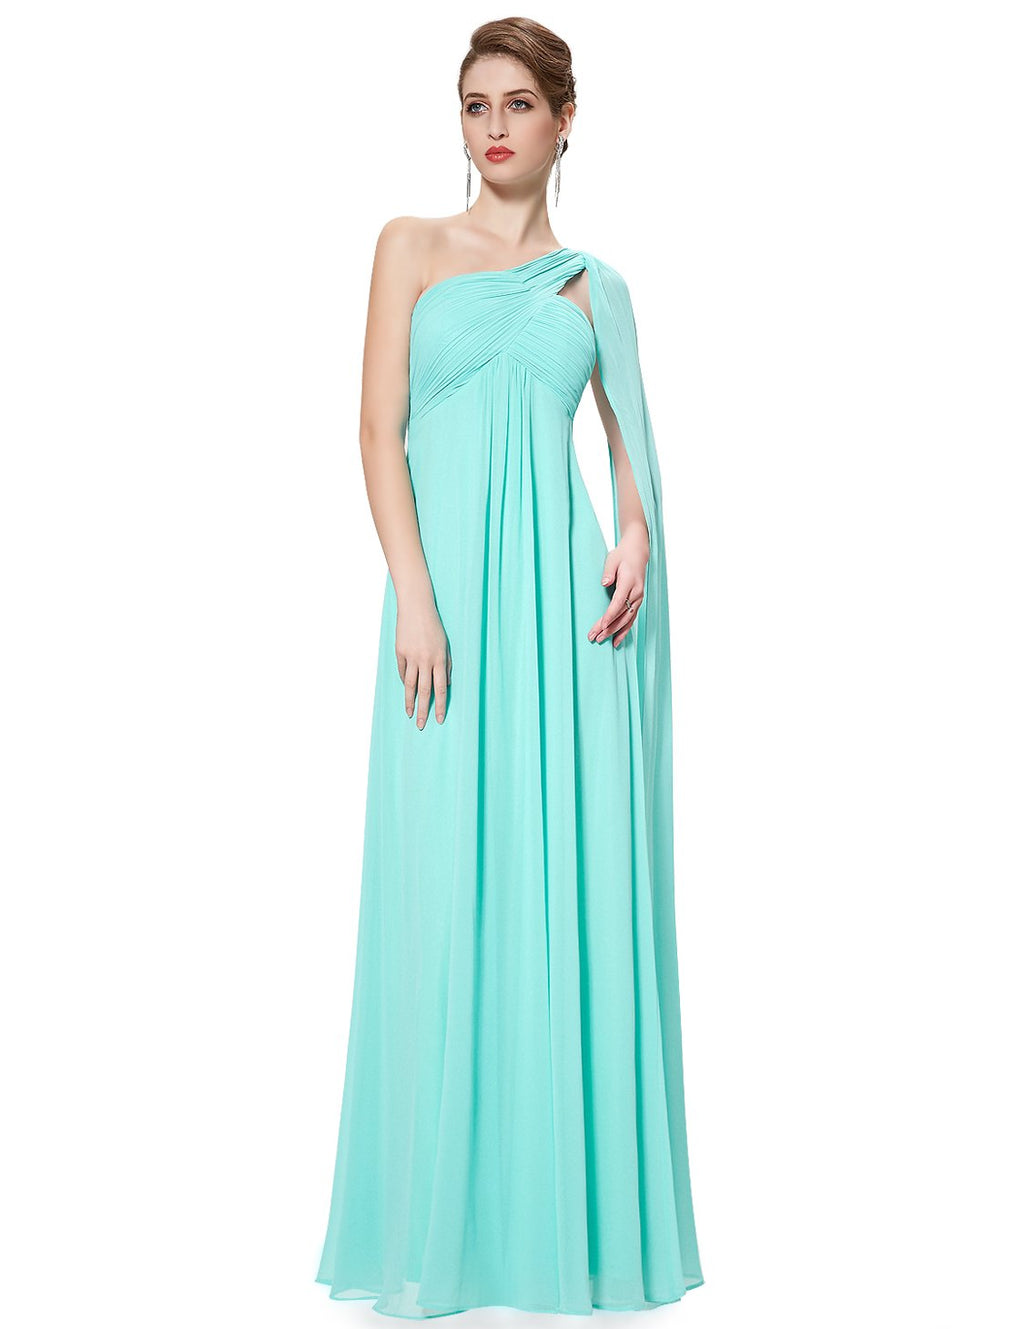 One Shoulder Simple Long Party Dress Aqua